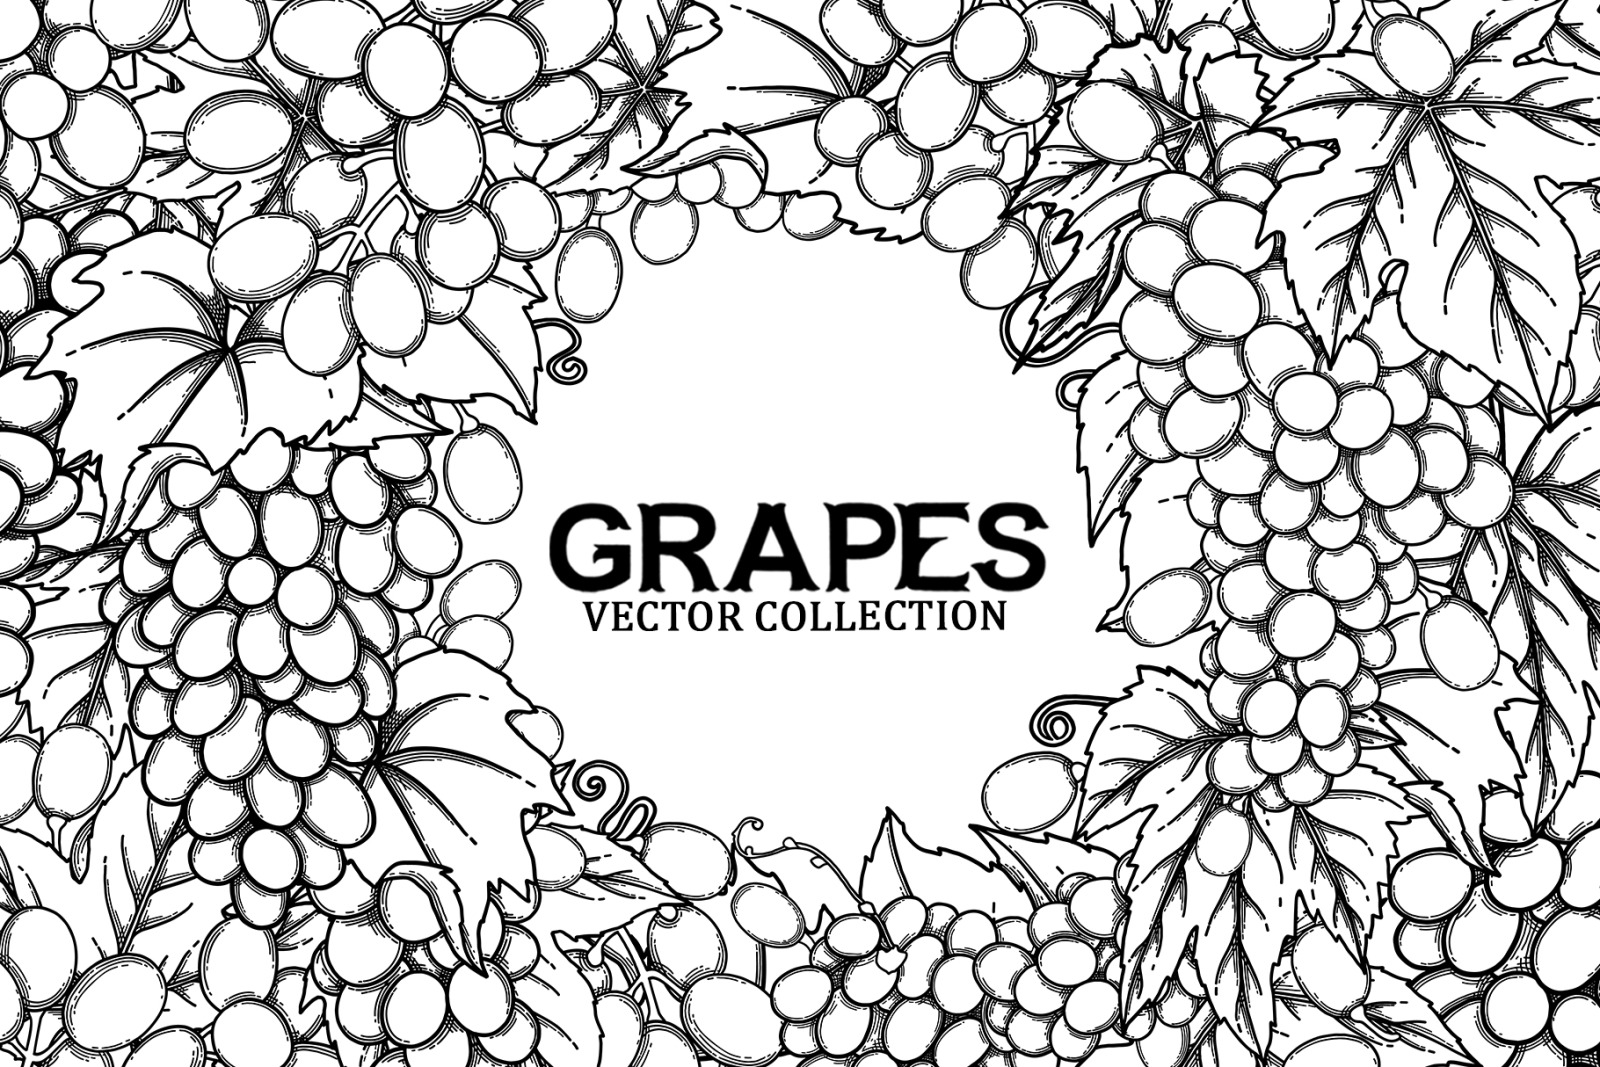 Grapes - vector graphics